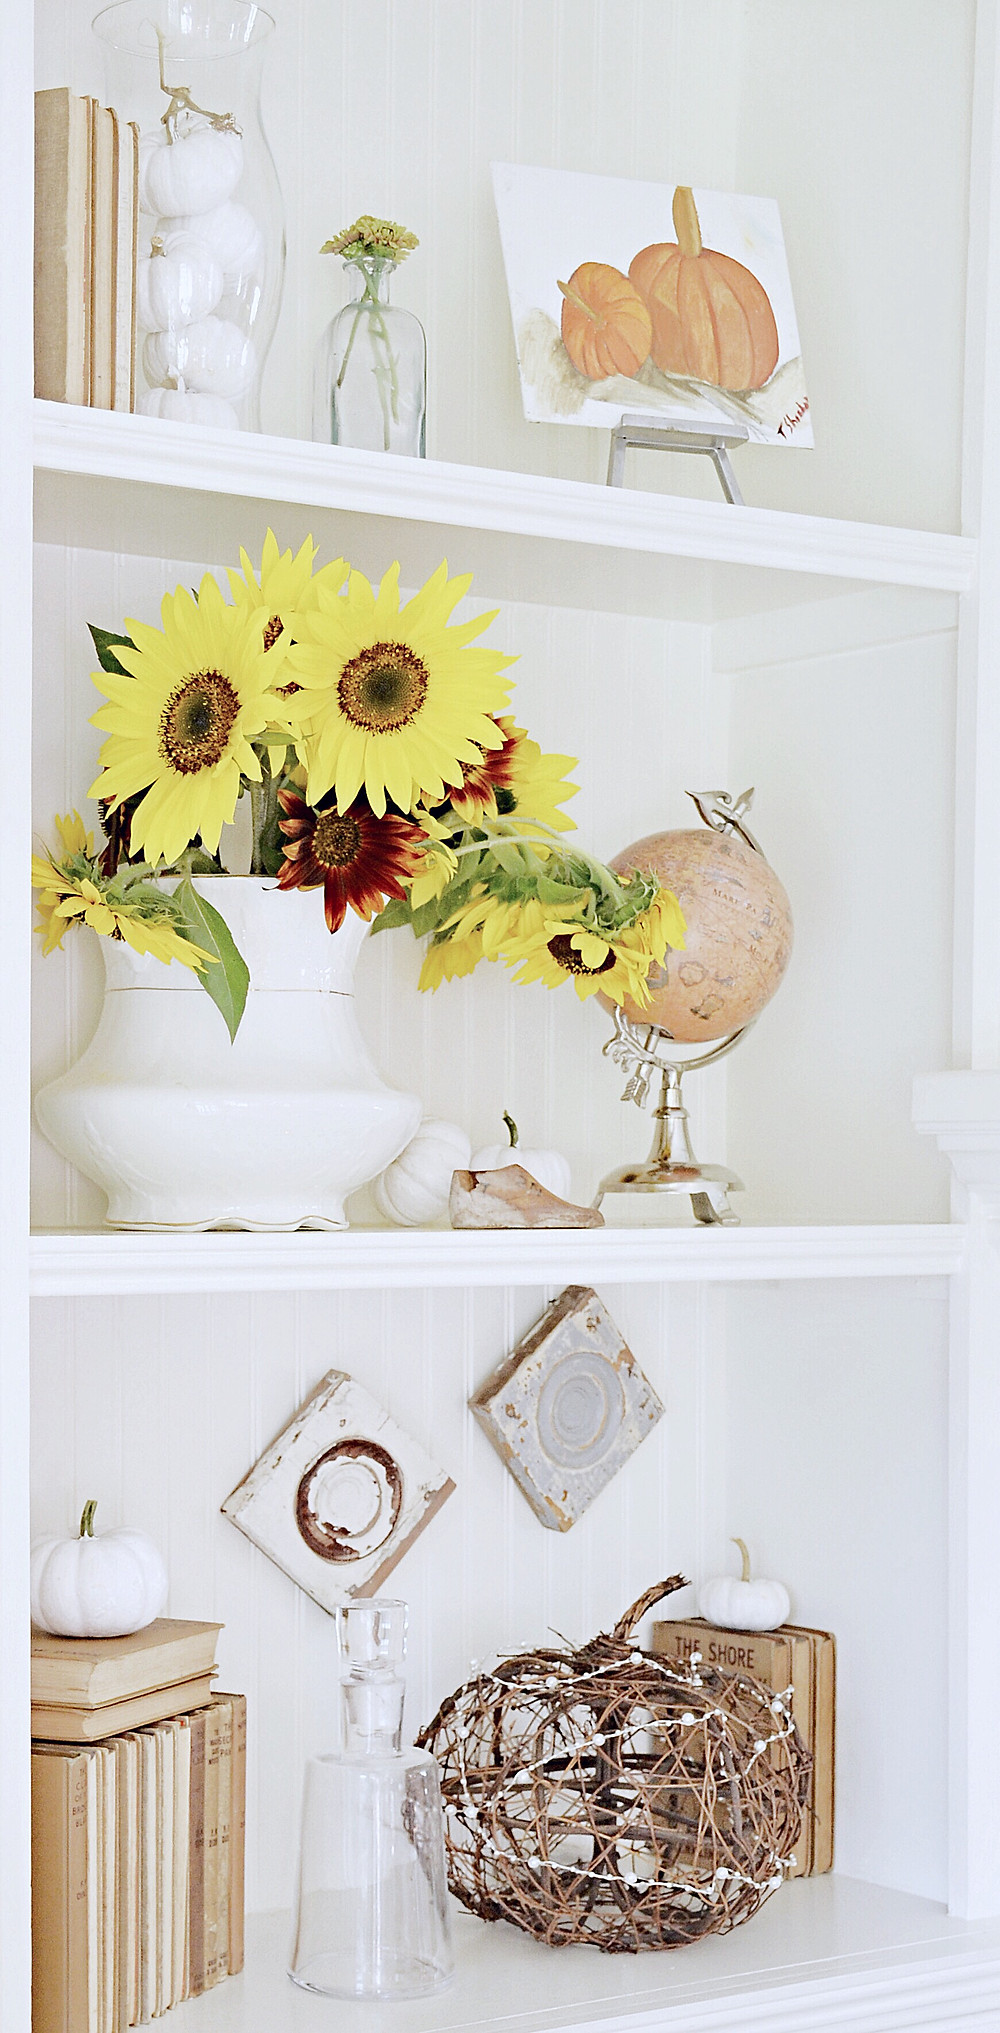 Fall styled built-ins shelves with vintage charm.